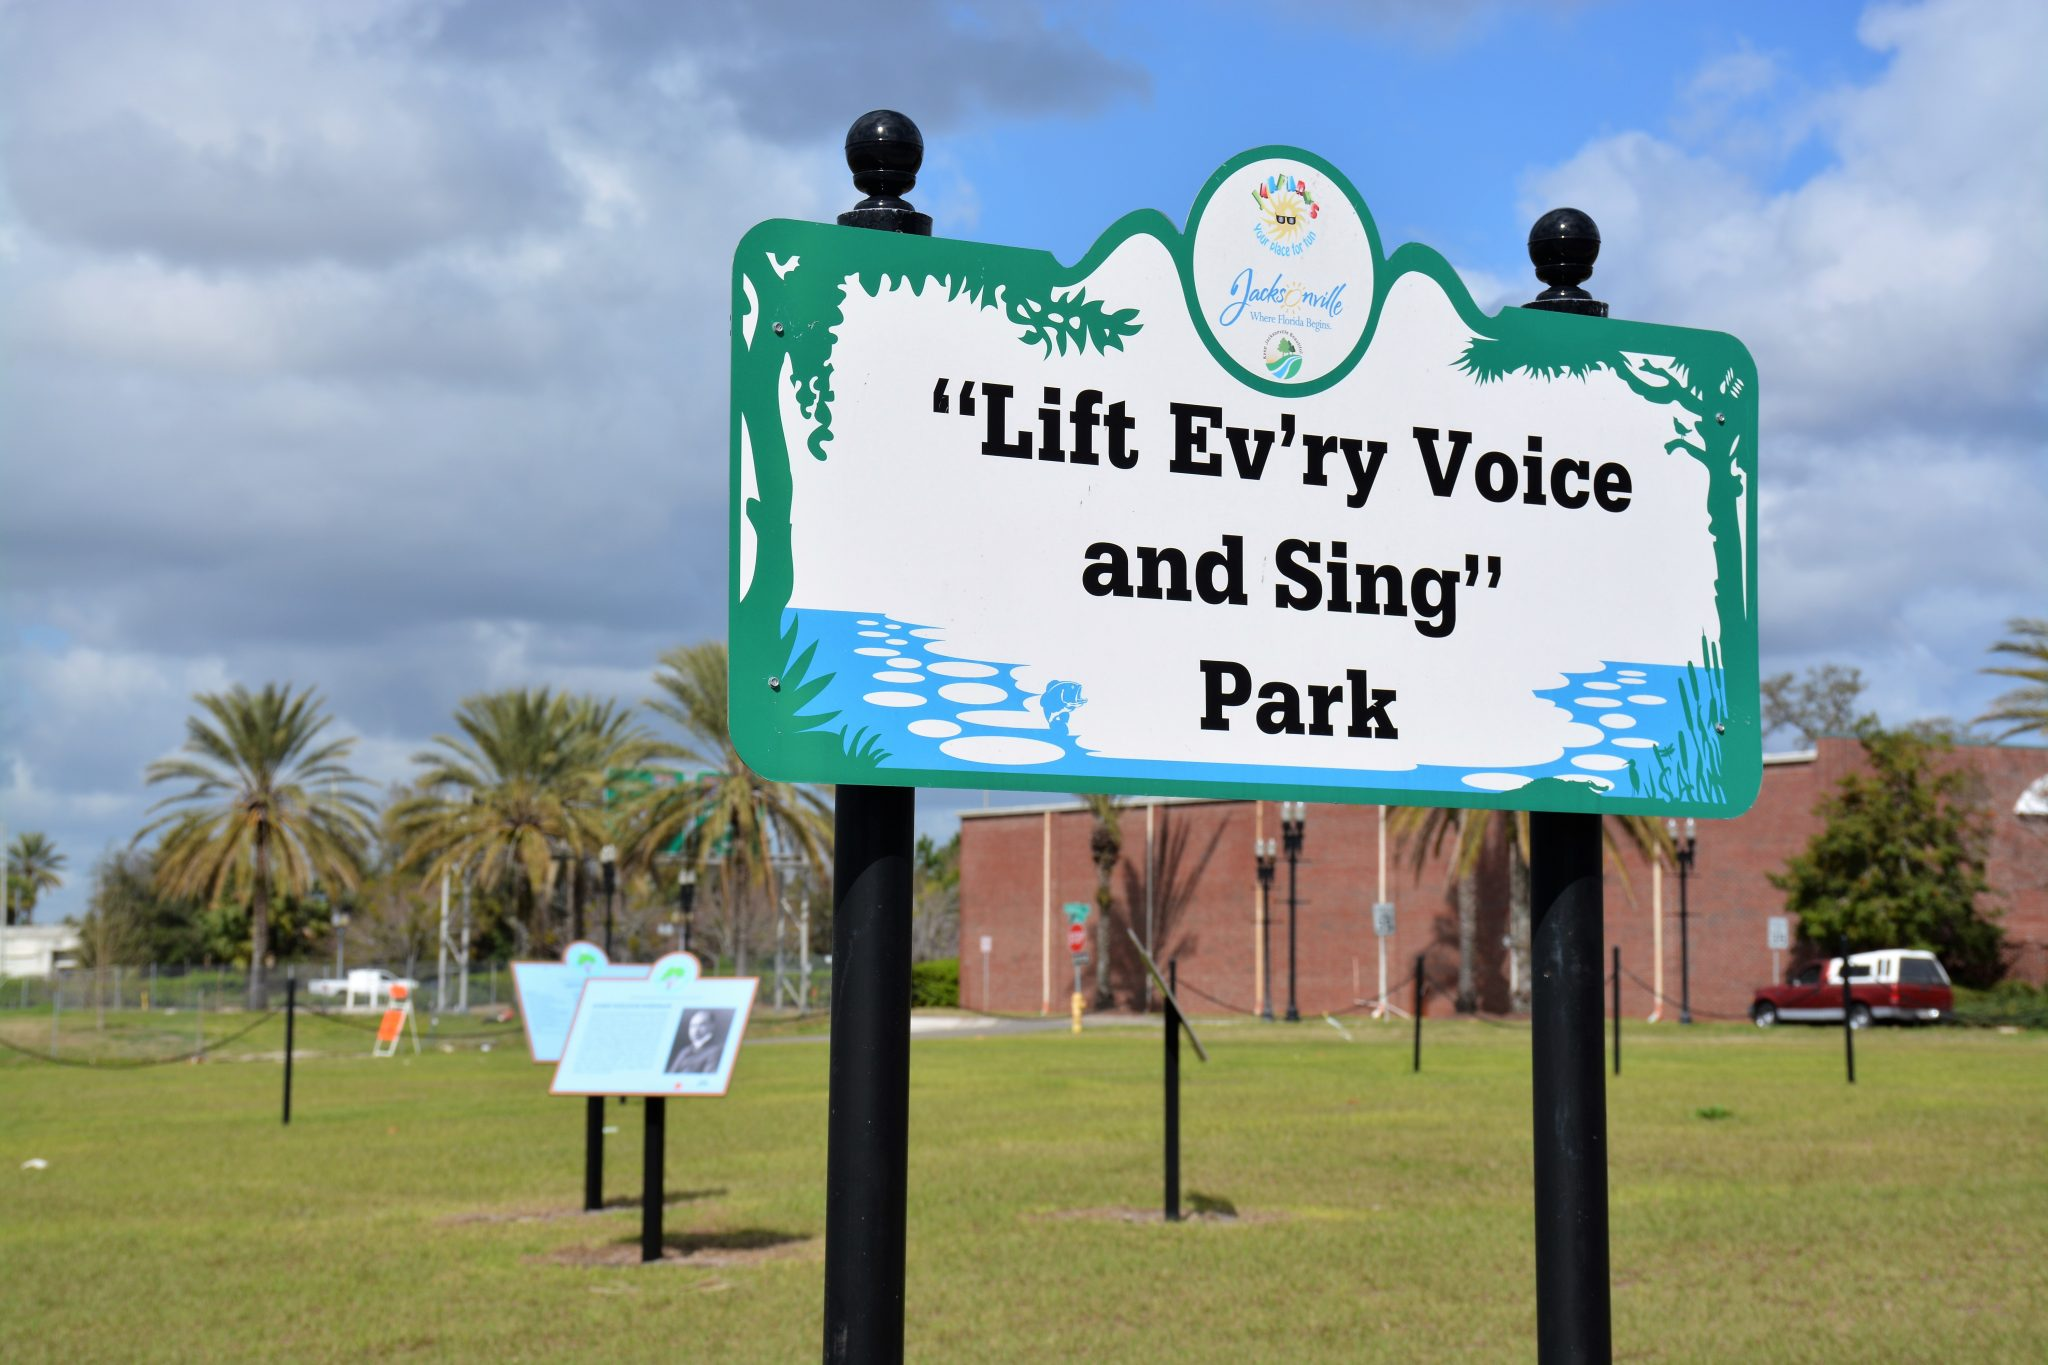 Lift Ev'ry Voice and Sing Park, Jacksonville, FL